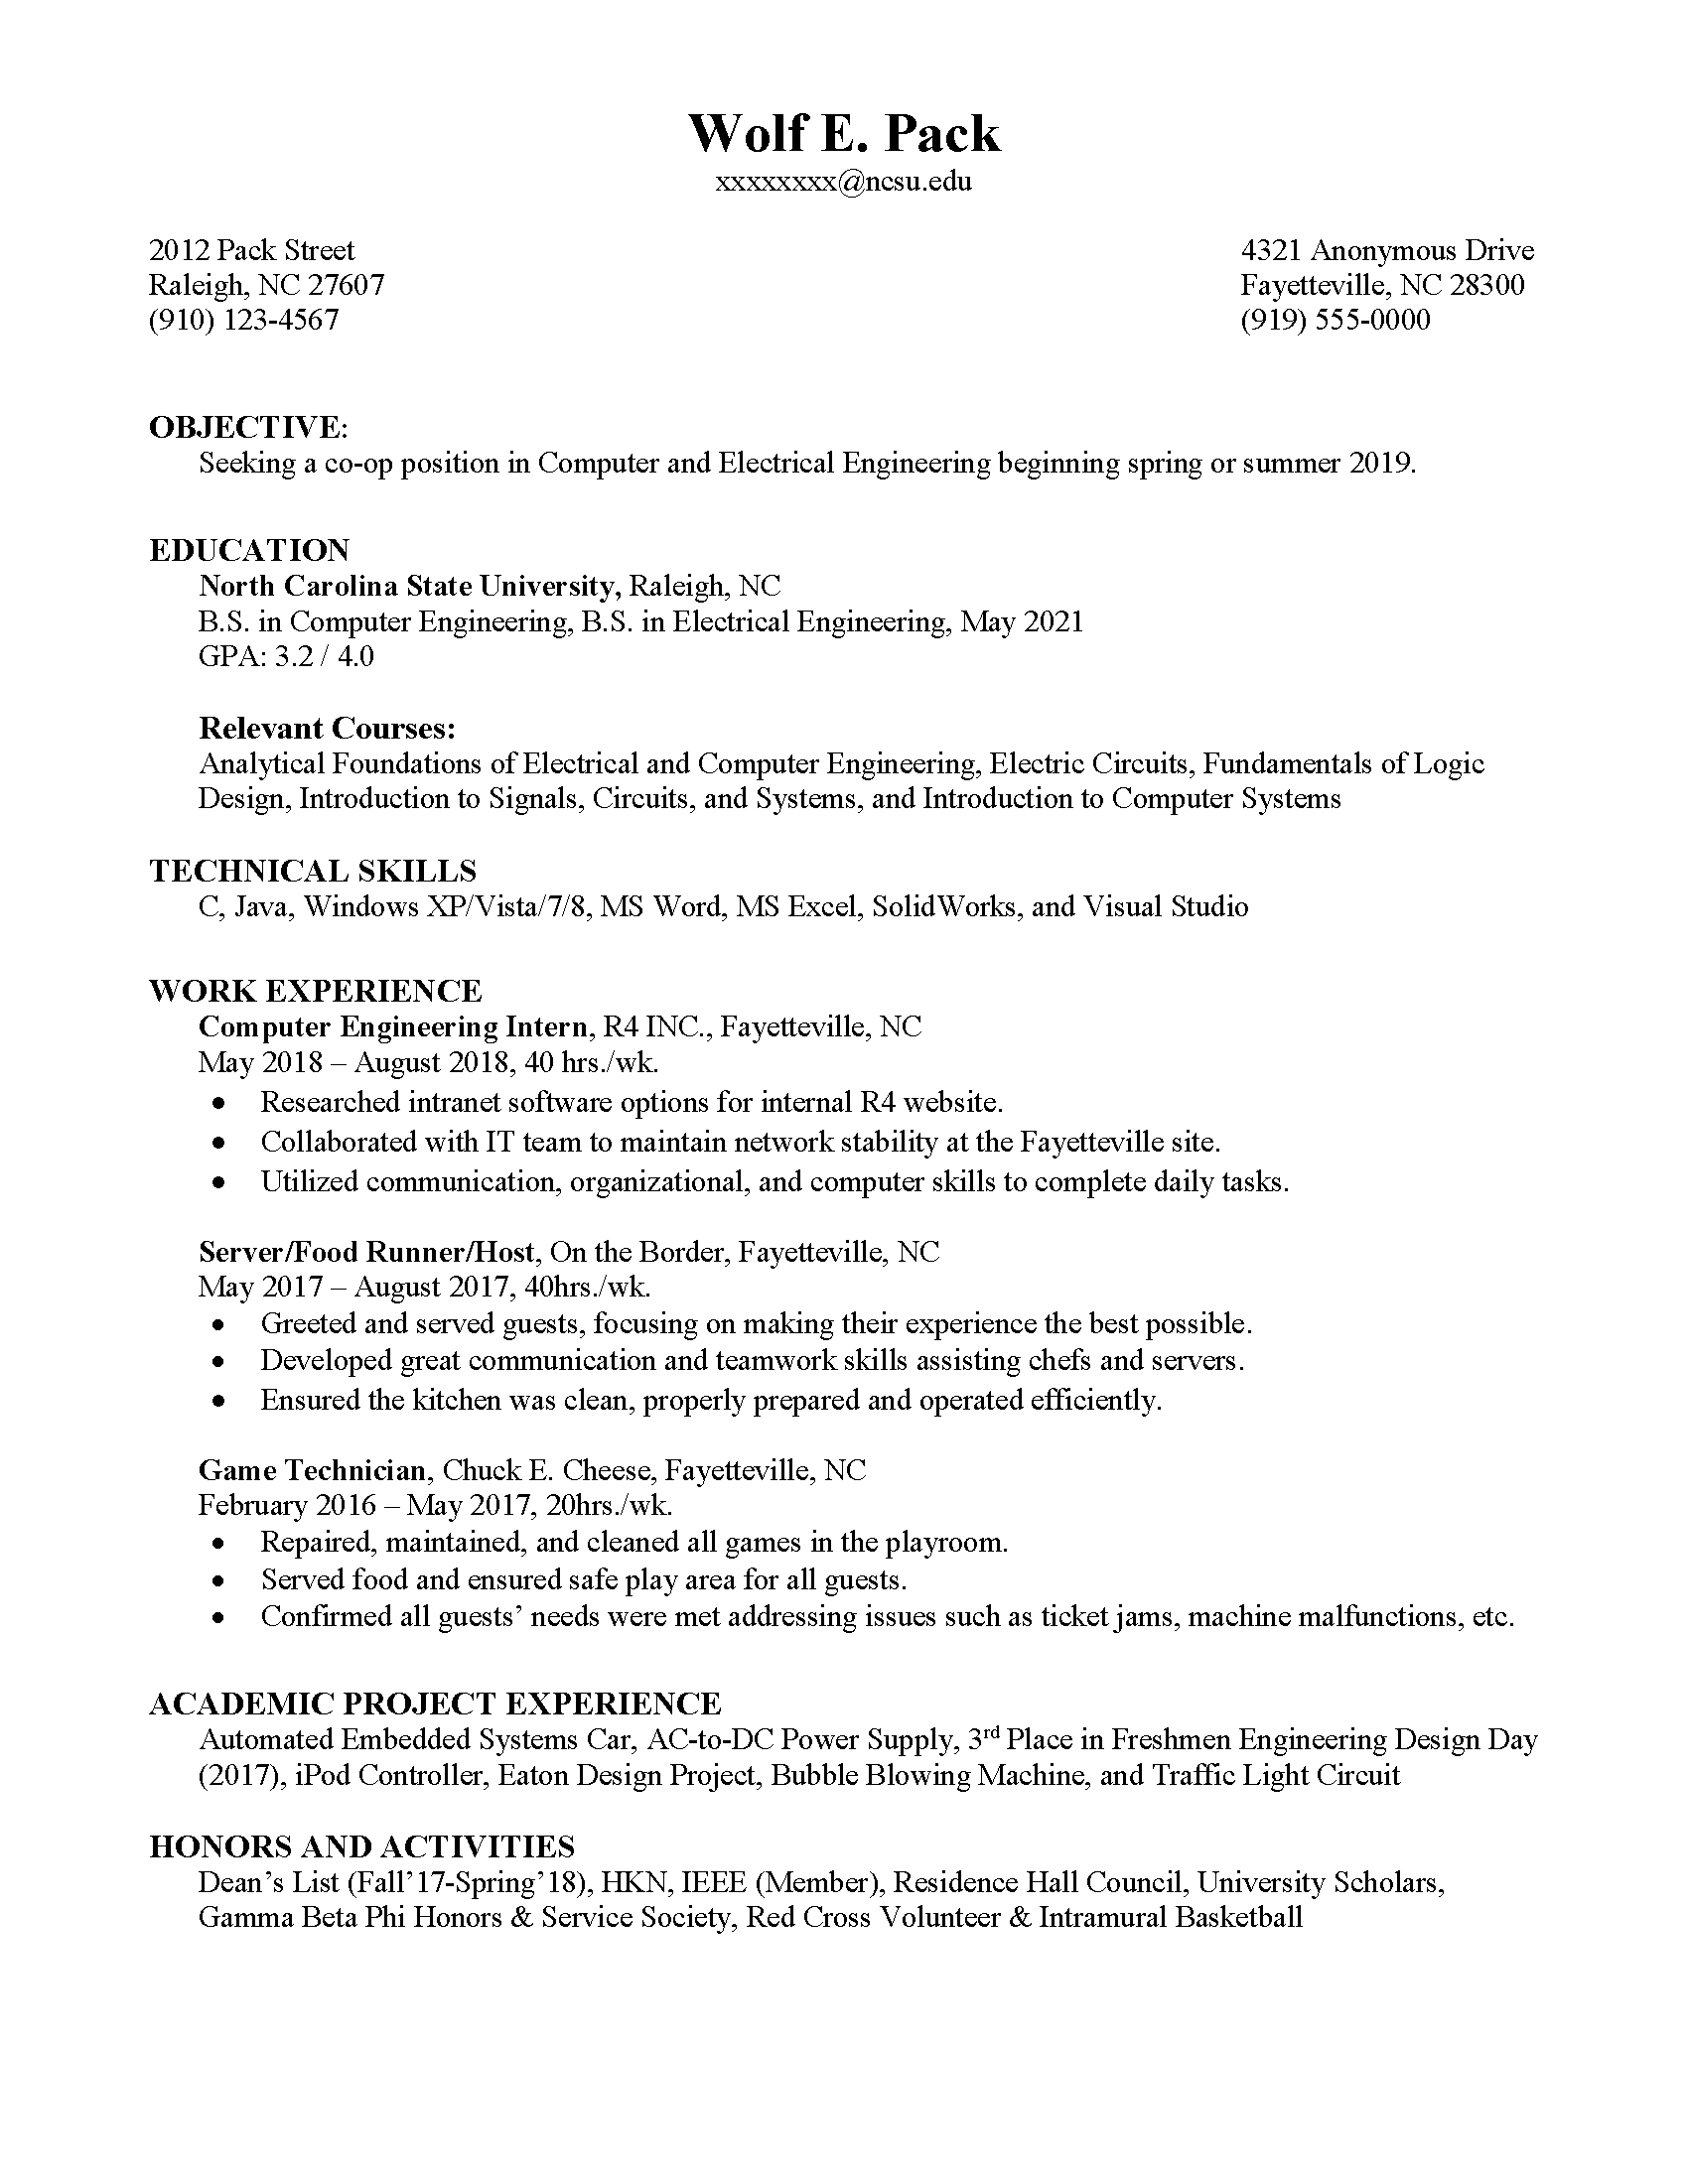 Co-op Resume | Career Development Center